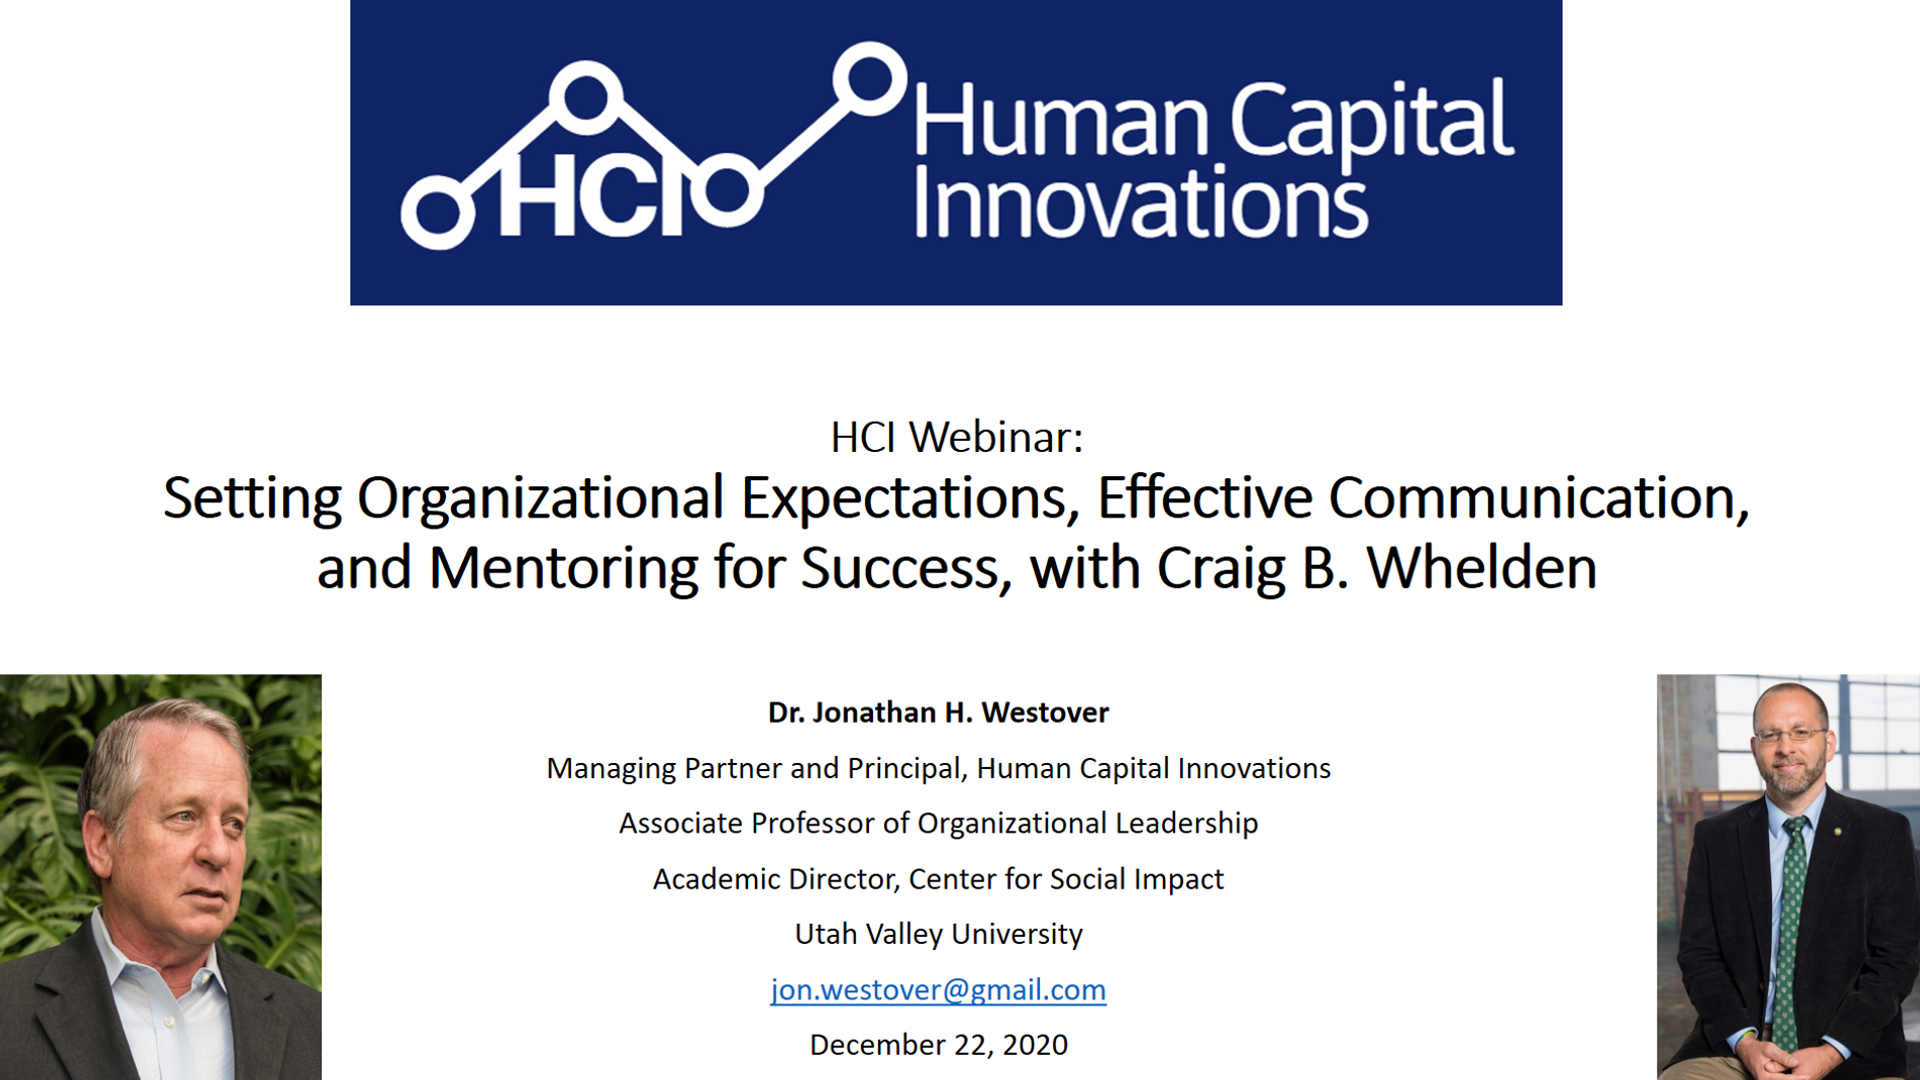 Setting Organizational Expectations & Effective Communication